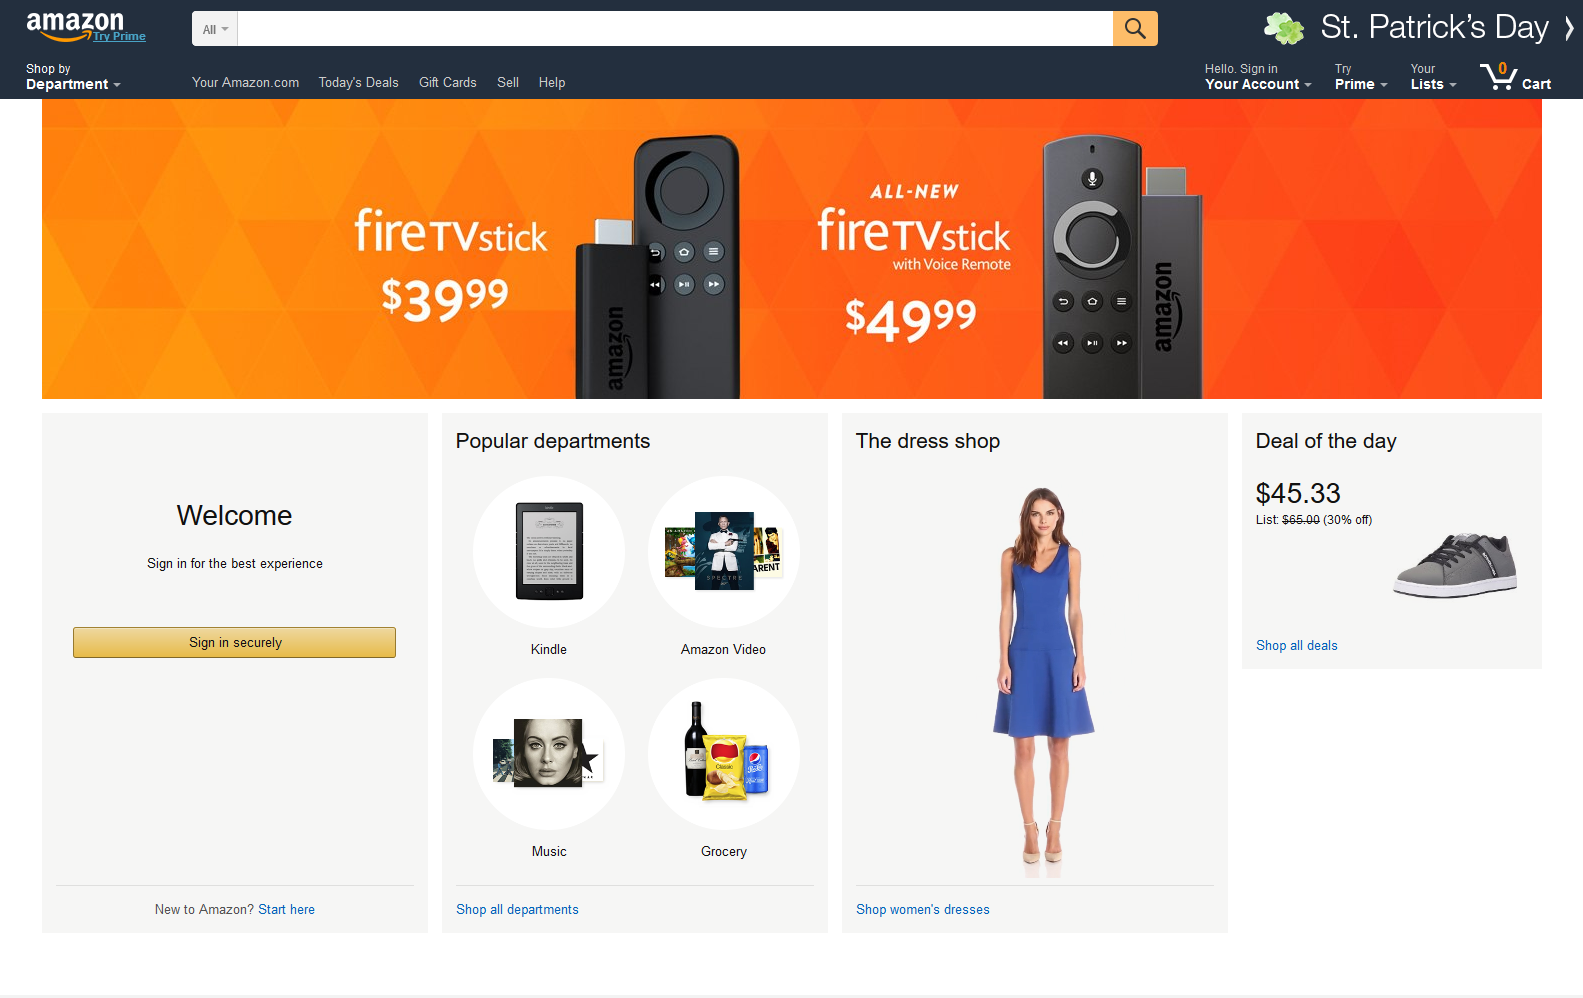 The Ultimate Guide to Amazon Product Marketing